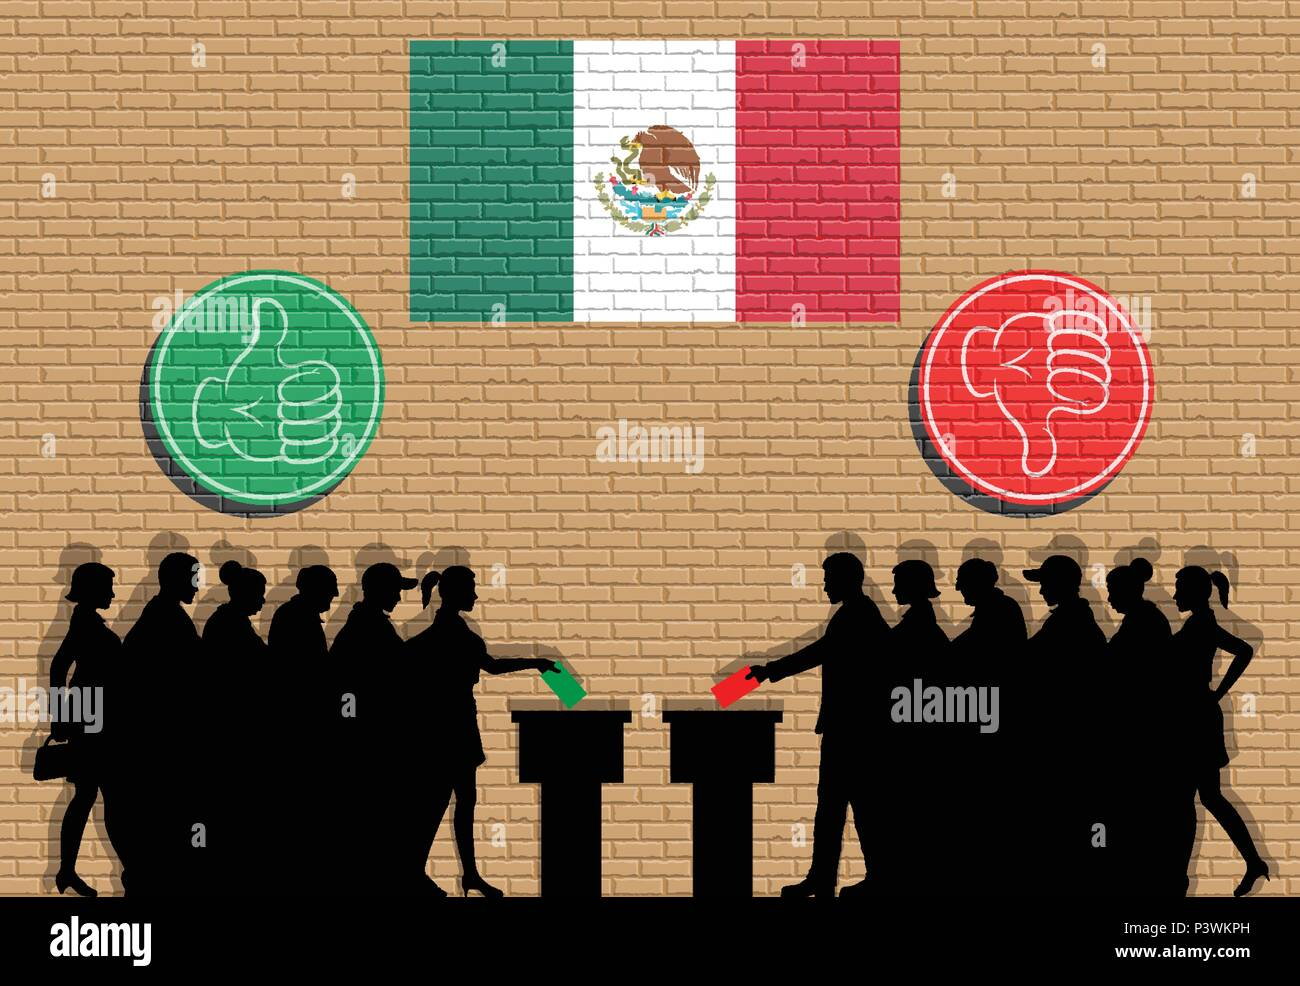 Mexican voters crowd silhouette in election with thumb icons and Mexico flag graffiti. All the silhouette objects, icons and background are in differe - Stock Image